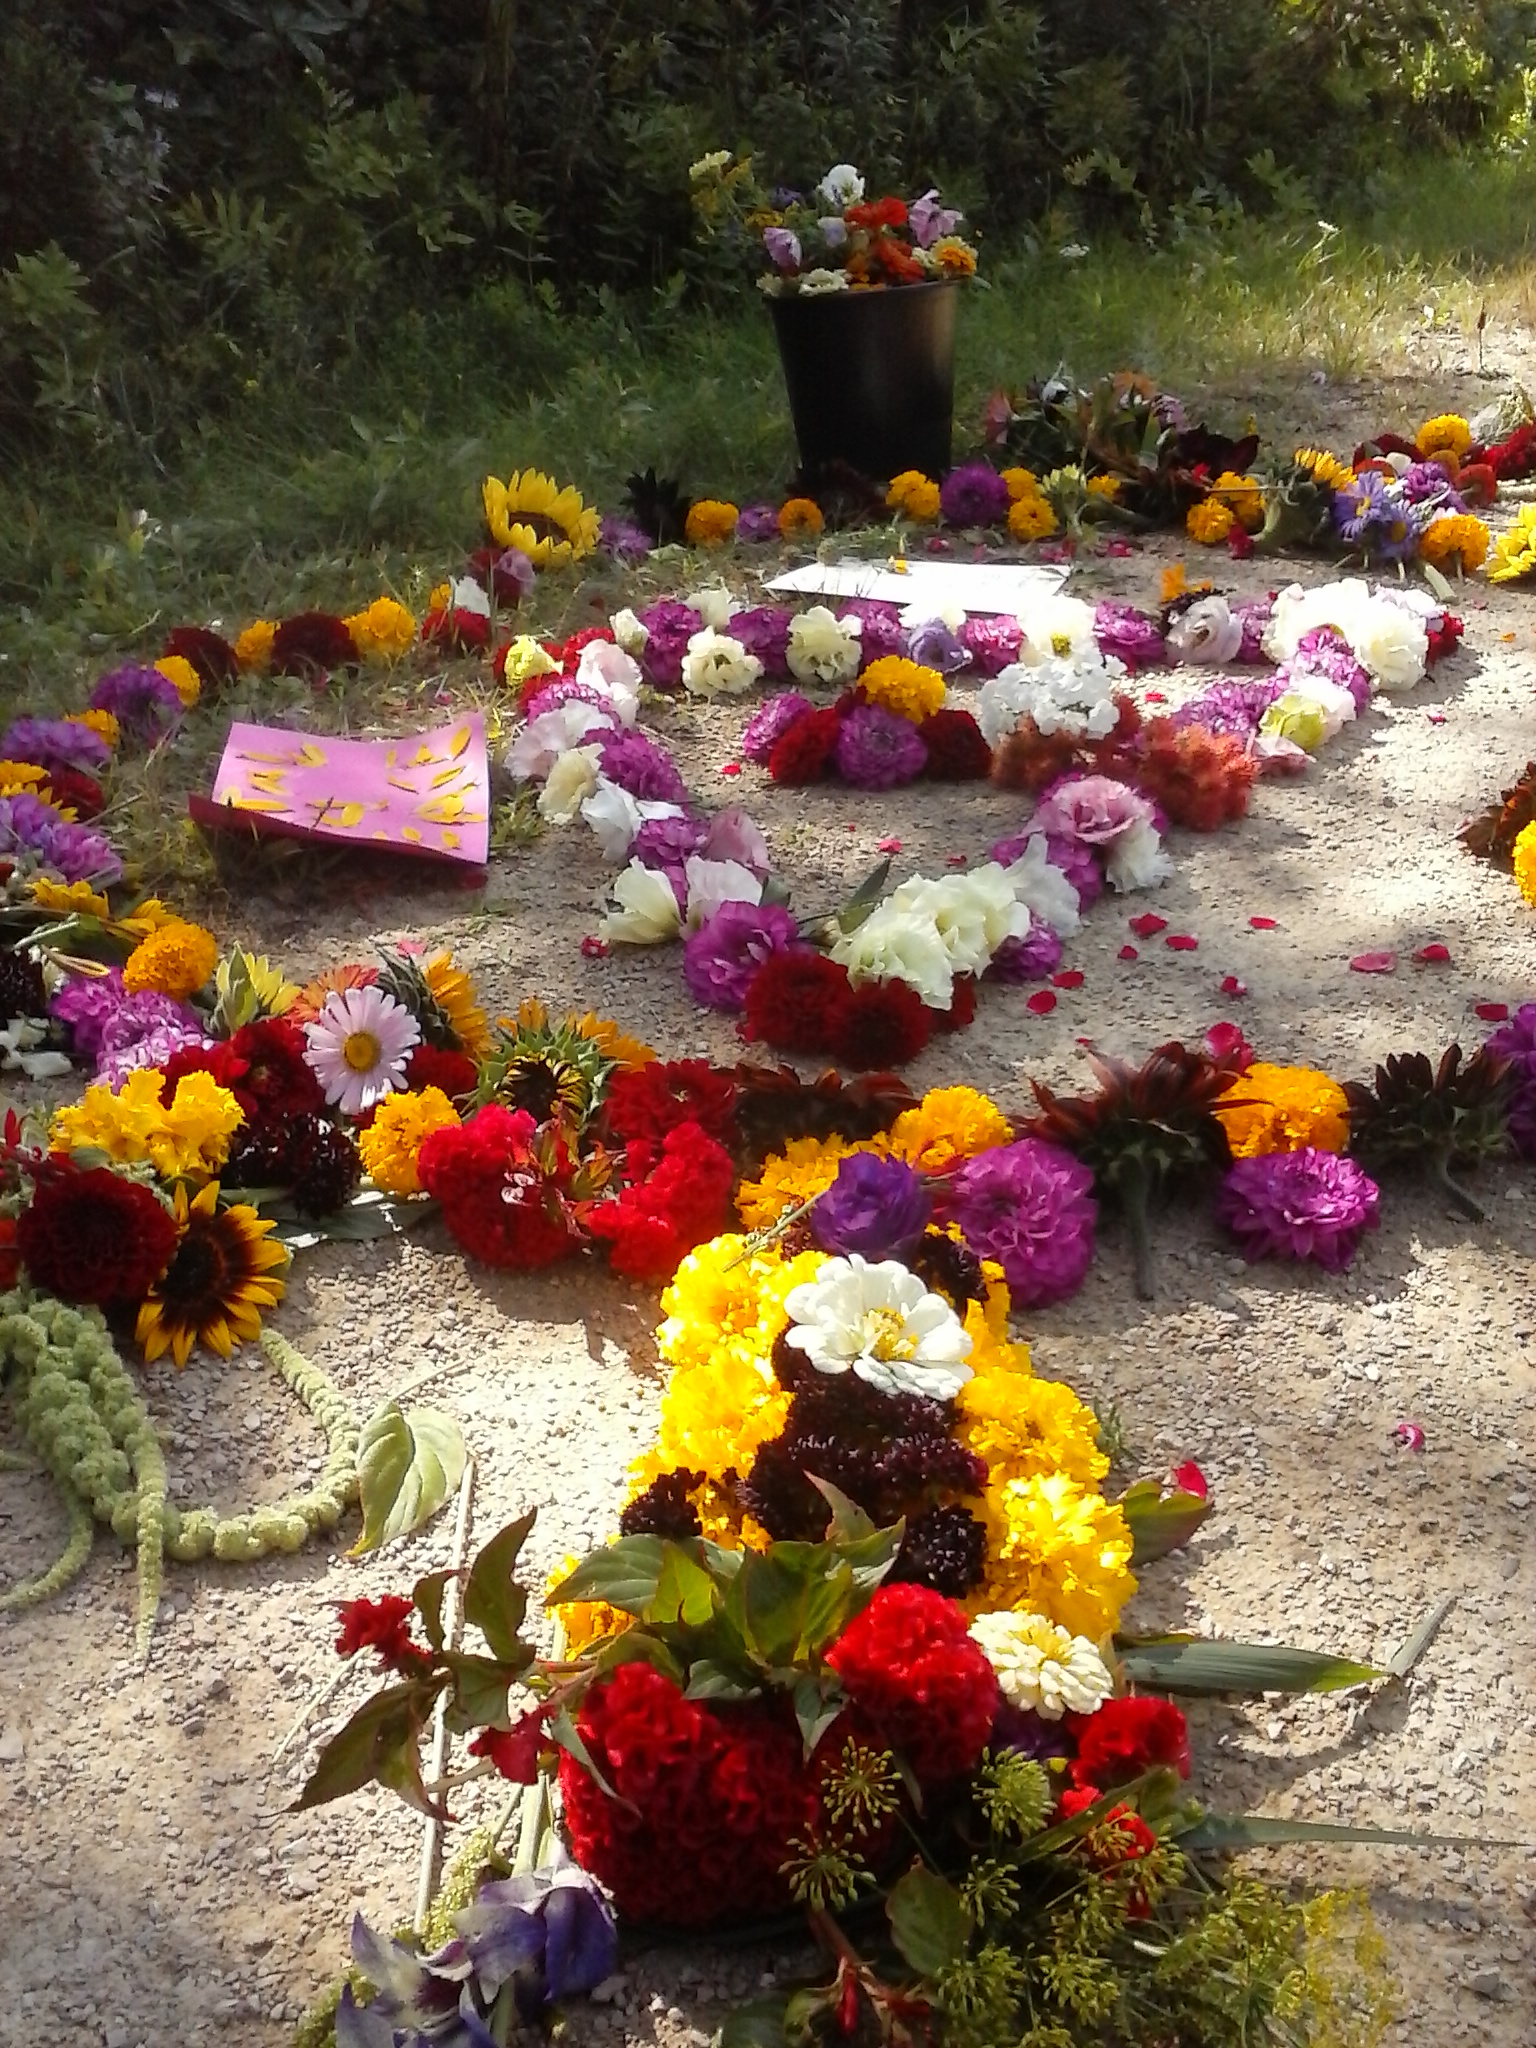 A Flower Mandala that Rob and I created along the bike path this summer. Flowers provide livelihood, love, and gratitude. We look forward to sharing this with you in the season's ahead. Photo by Erin Schneider